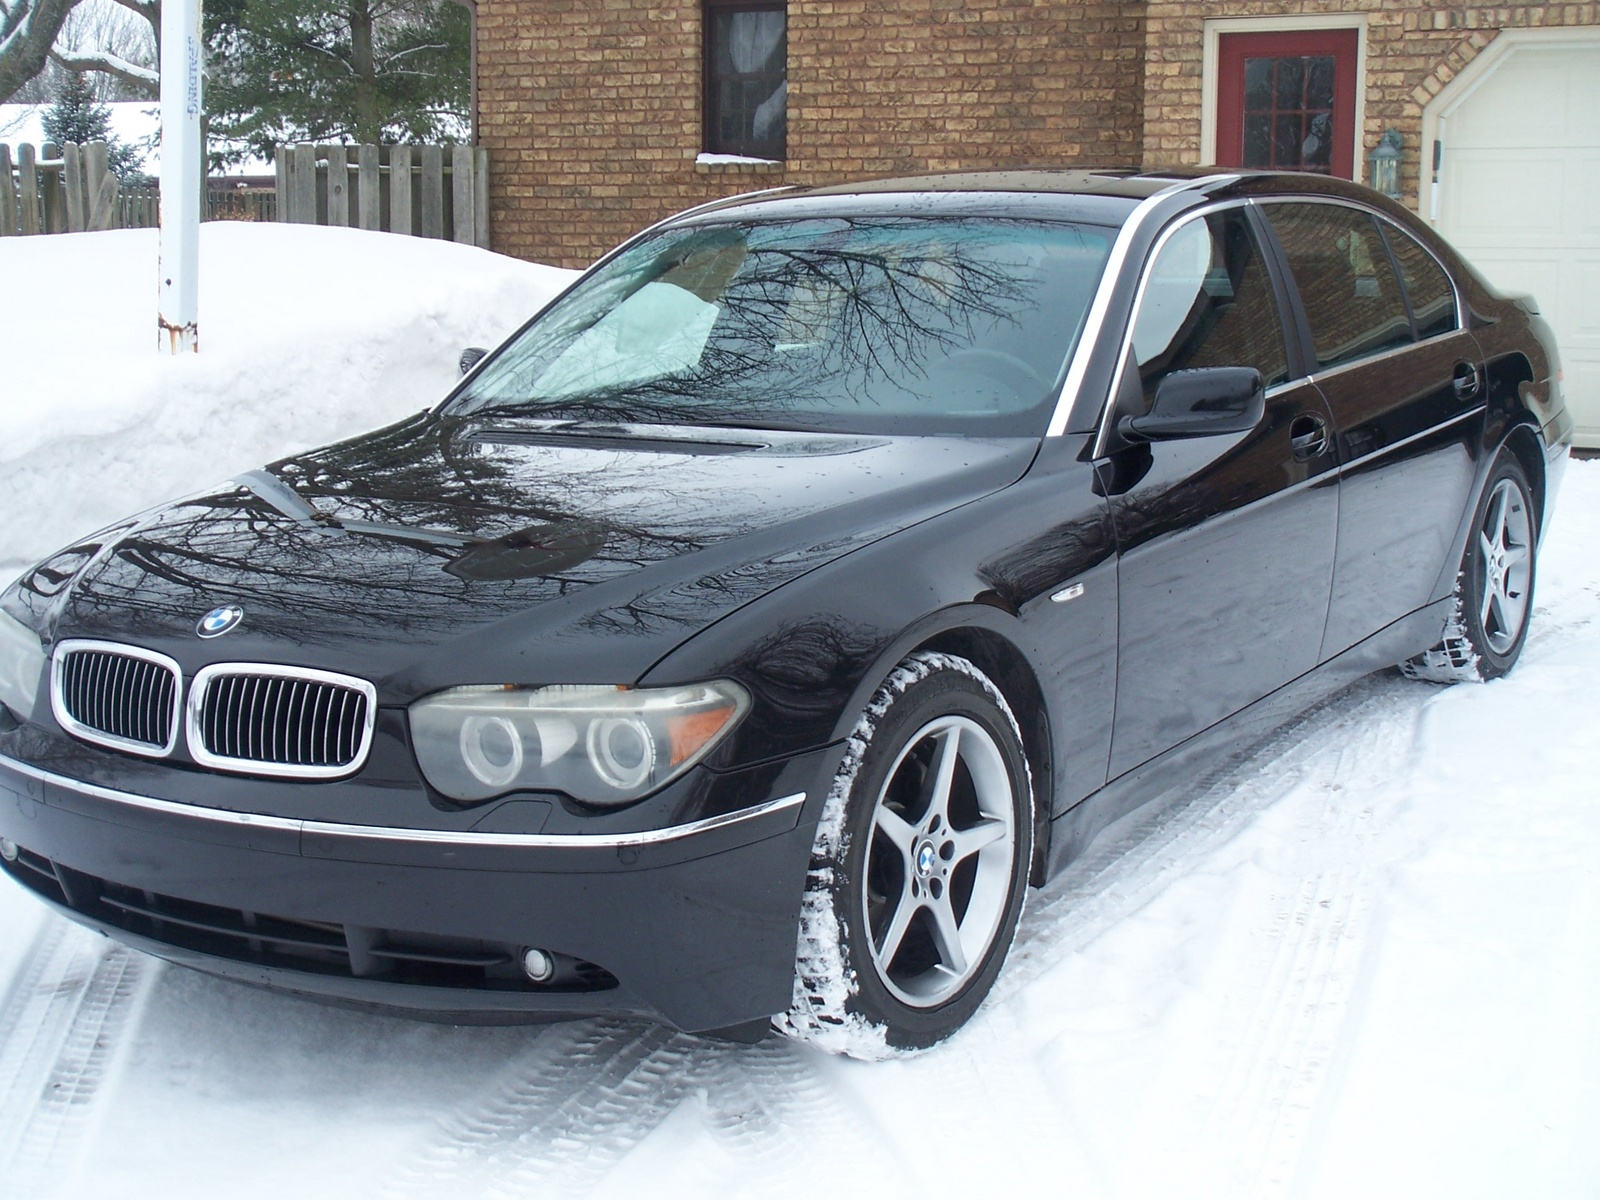 BMW 7 series 735Li 2004 photo - 11